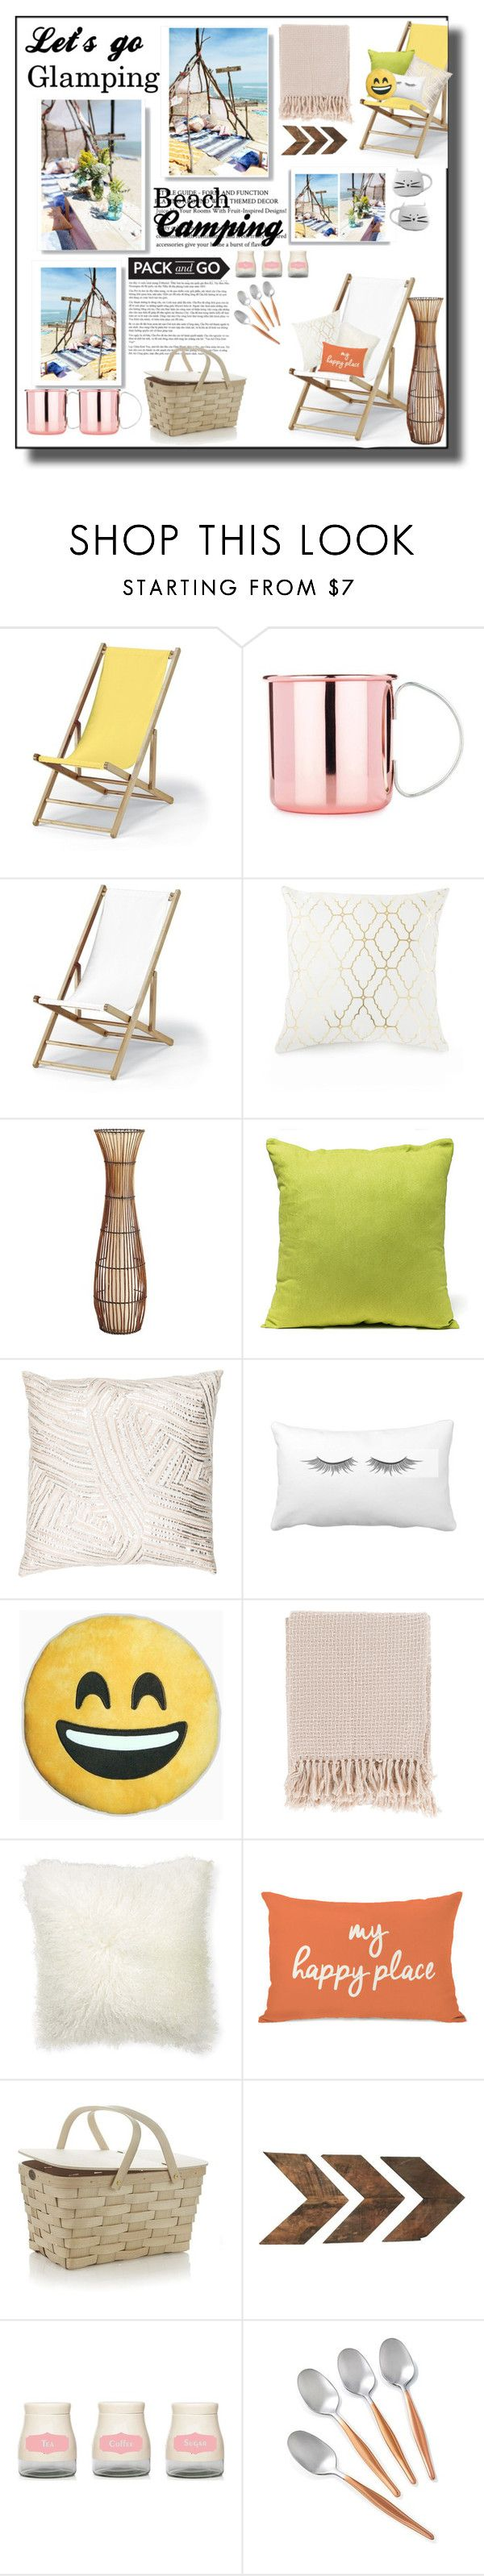 """Let's Go Glamping: Beach Camp"" by kate34000 ❤ liked on Polyvore featuring interior, interiors, interior design, home, home decor, interior decorating, Telescope Casual, Pier 1 Imports, John Robshaw and Surya"